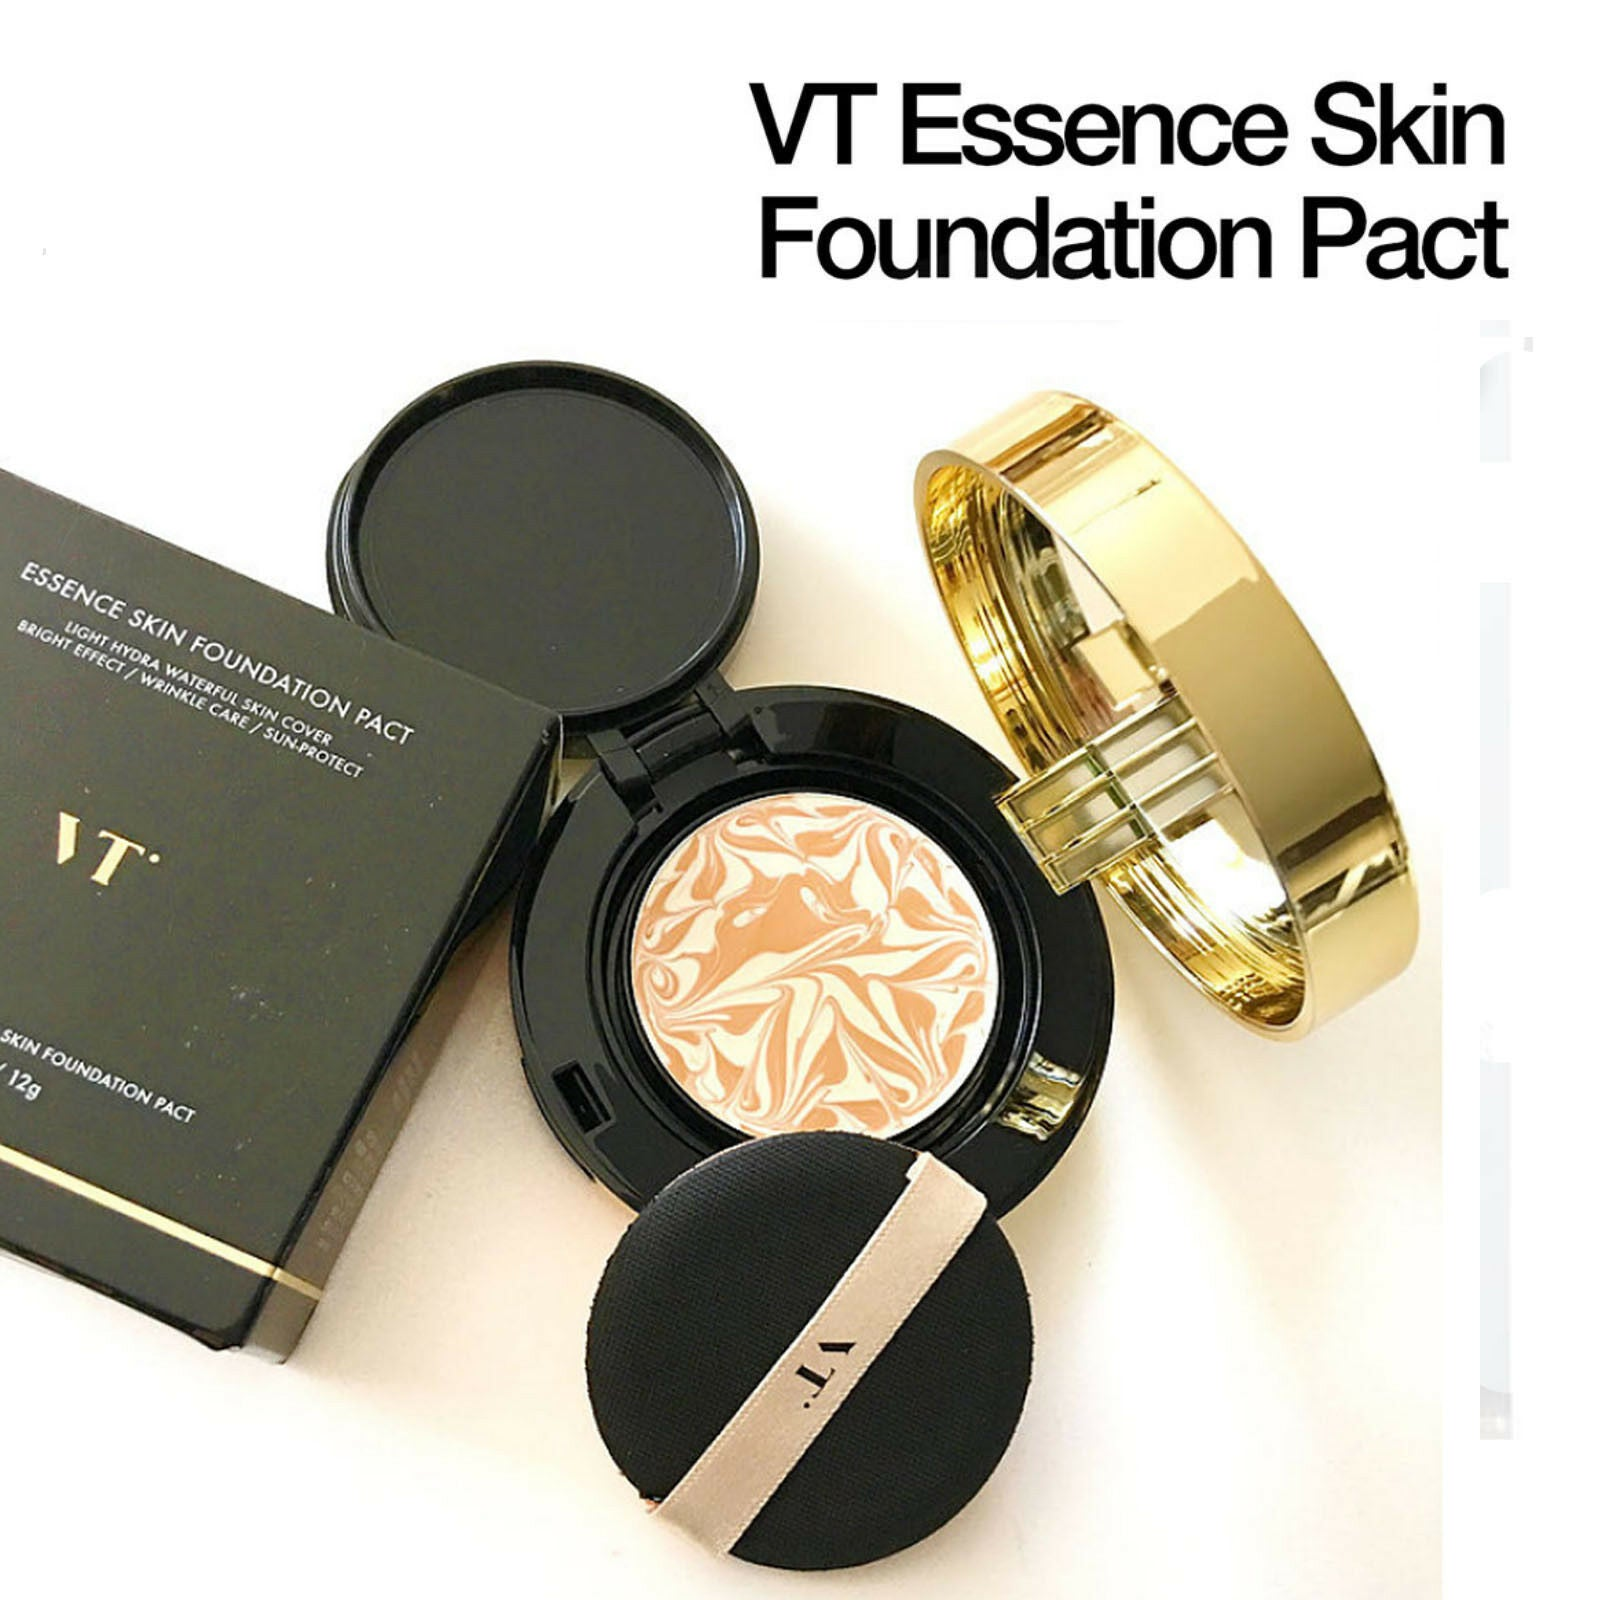 VT x BTS Essence Skin Foundation Pact #21 & #23